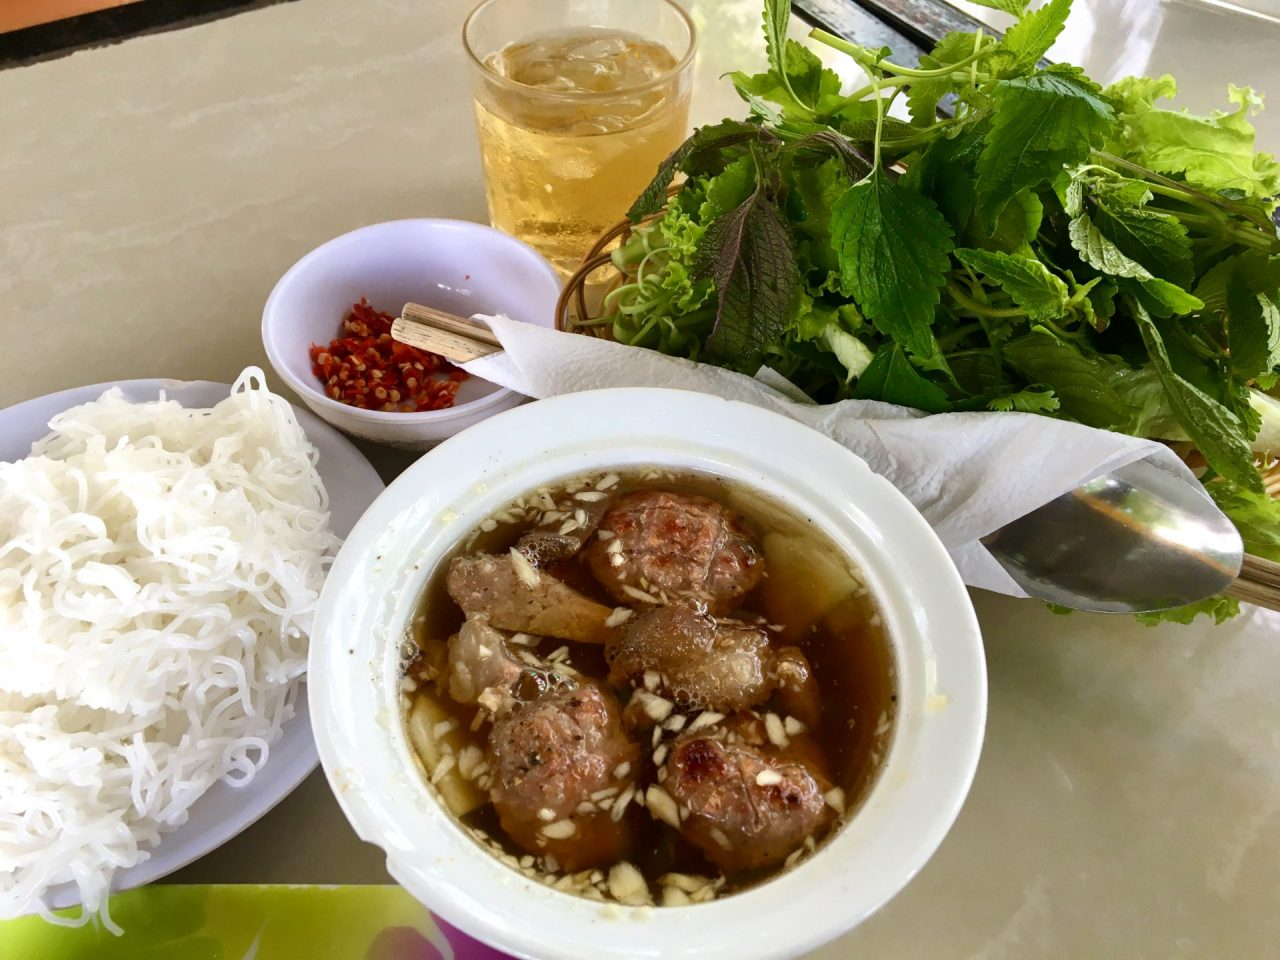 Bún Chả Ha Noi - Hanoi-Style Vermicelli Noodles with Grilled Pork and Herbs